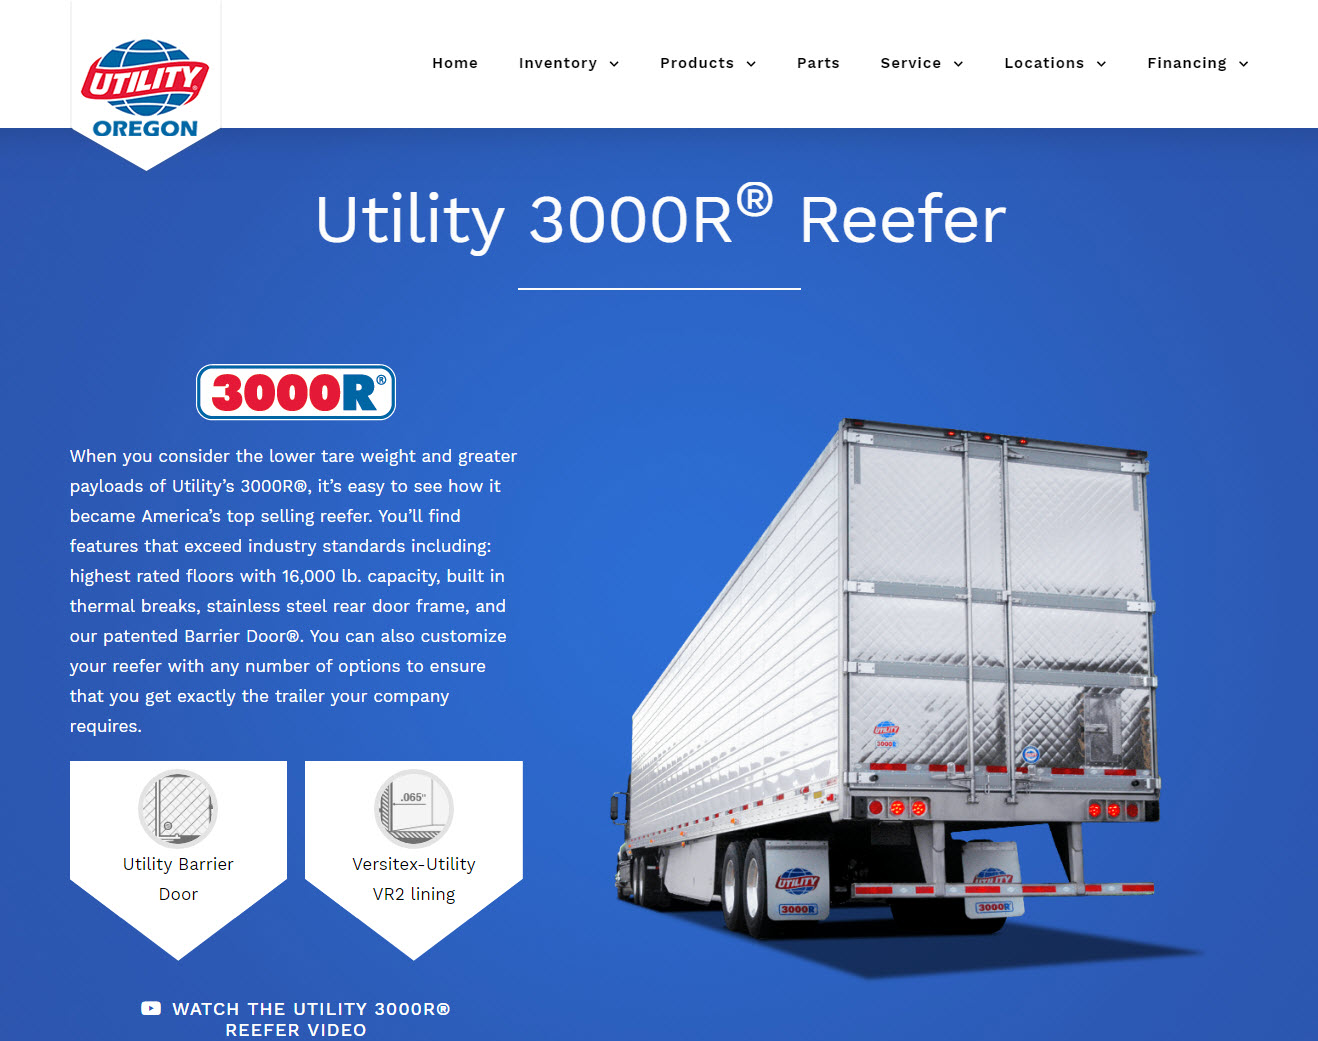 Utility Trailer Sales of Oregon - Product Page Example